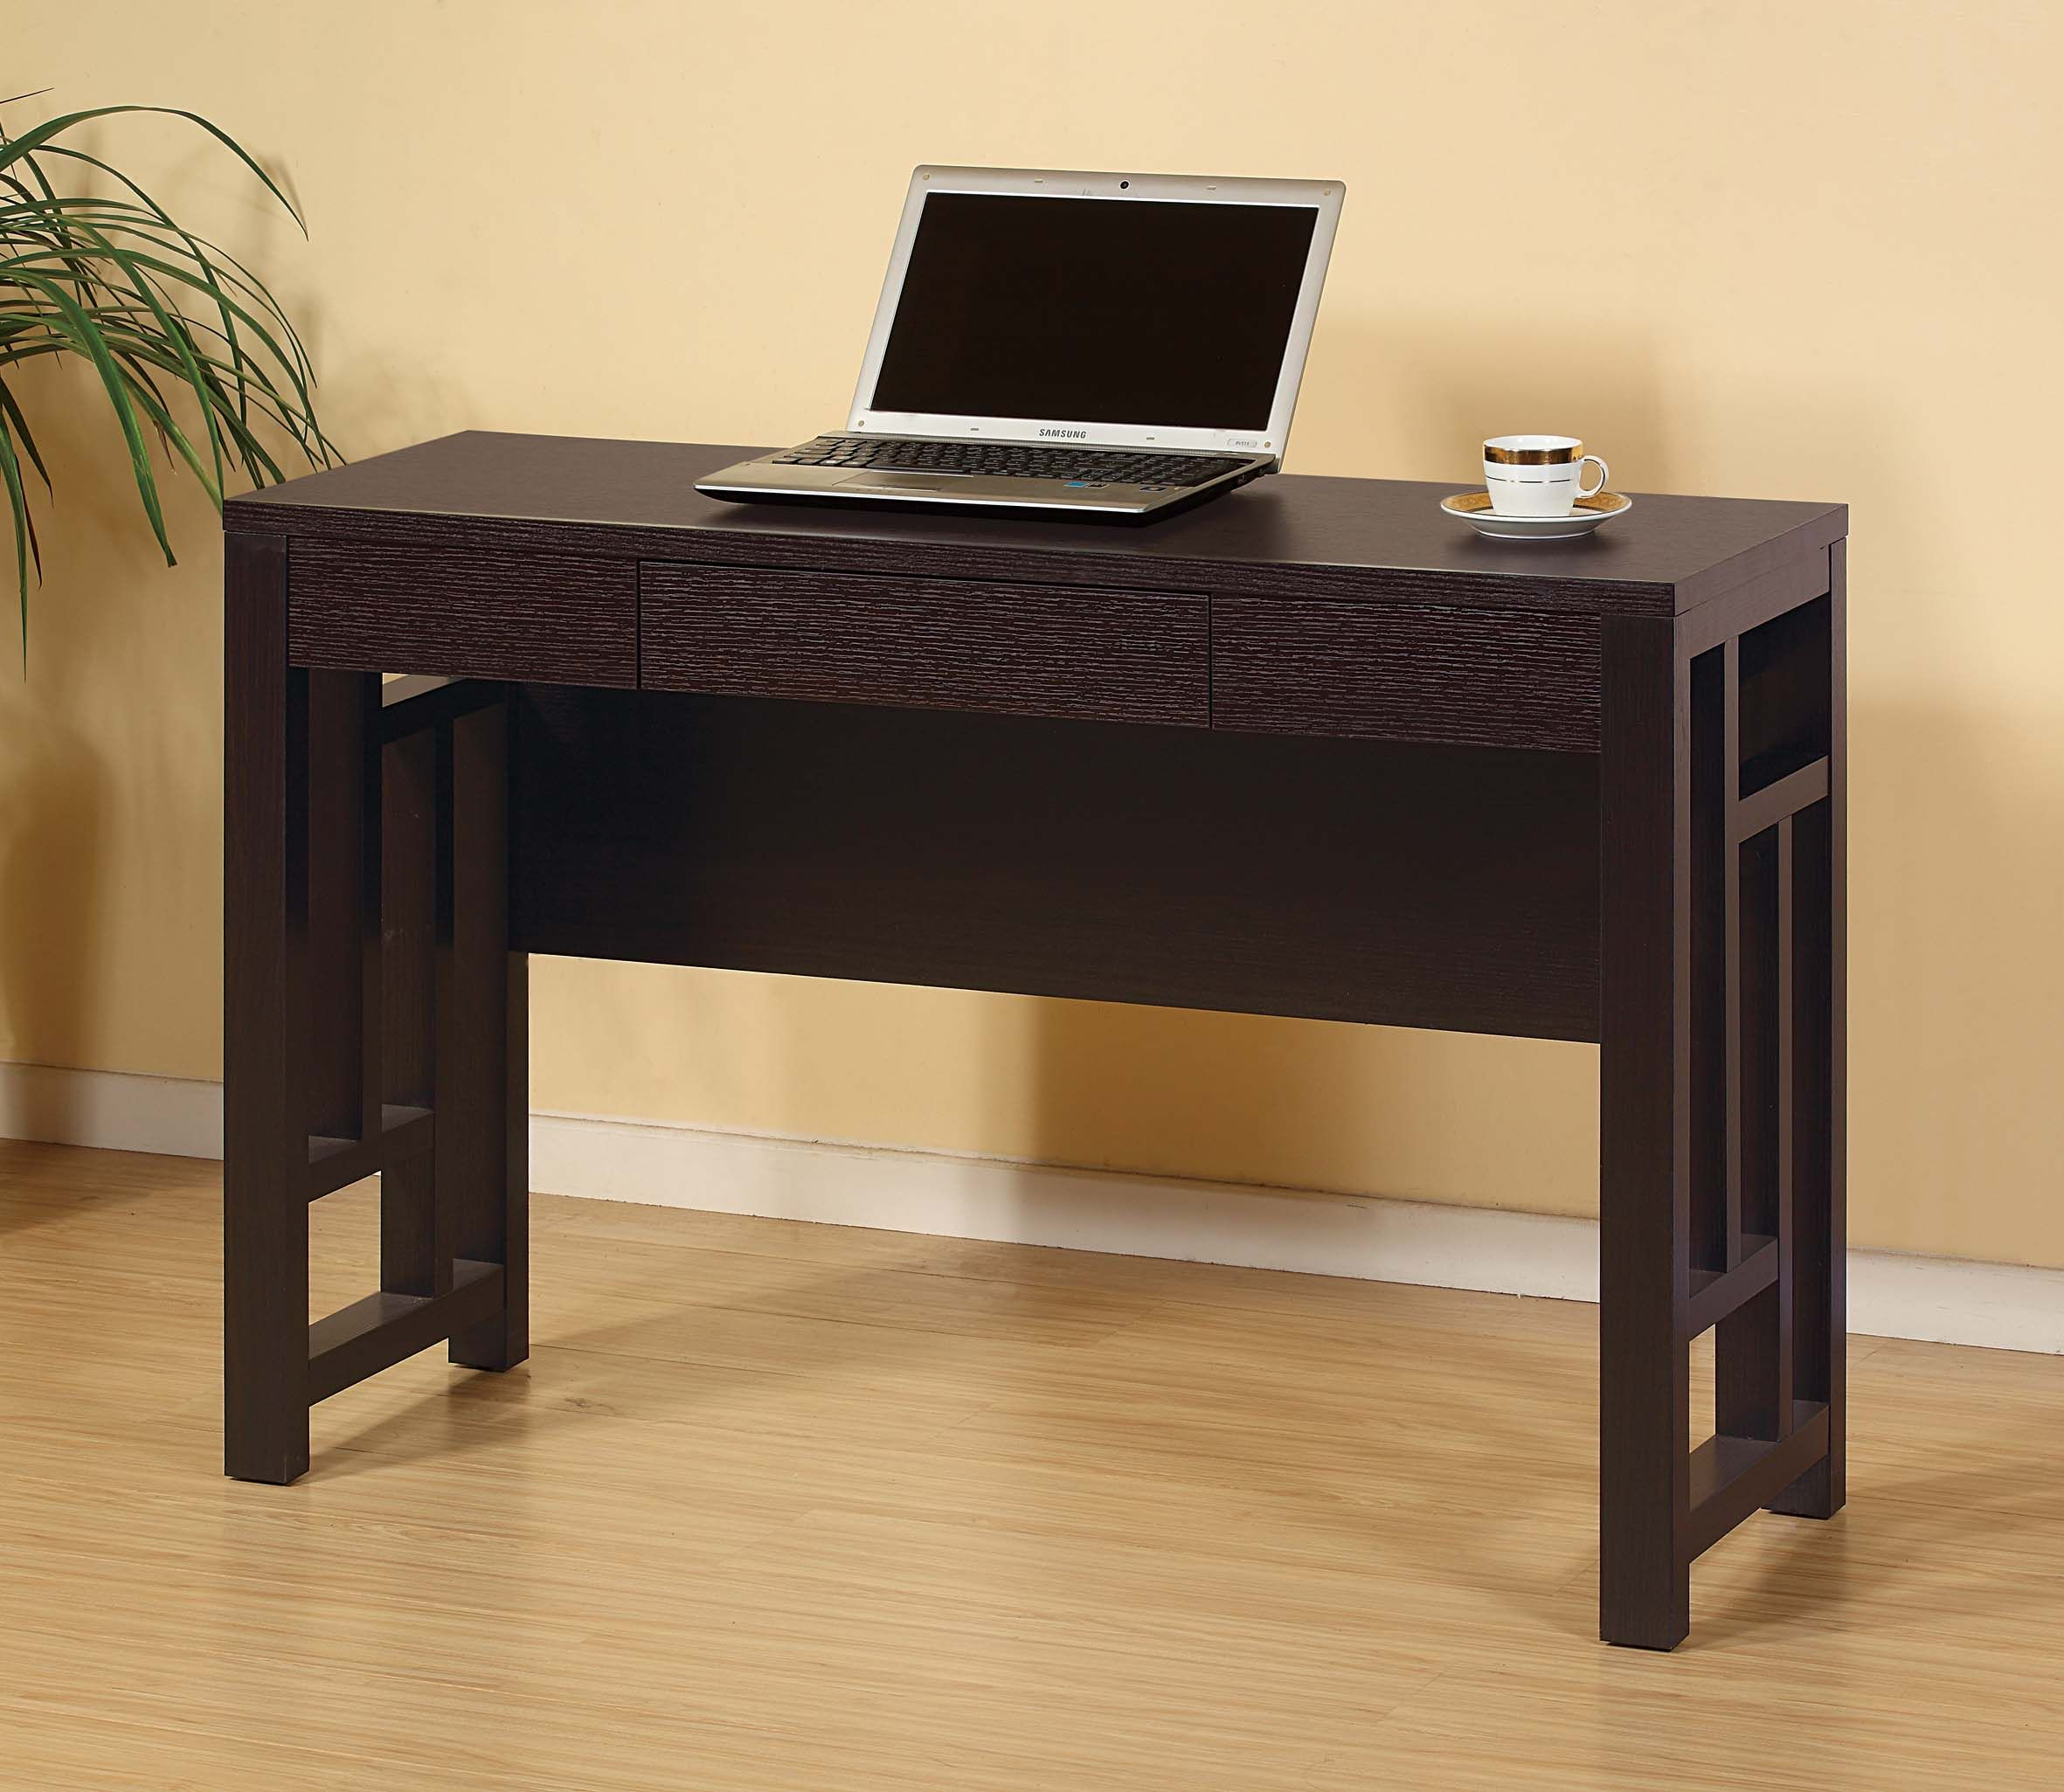 14927 Sofa Table/Desk Features A Shallow Depth For